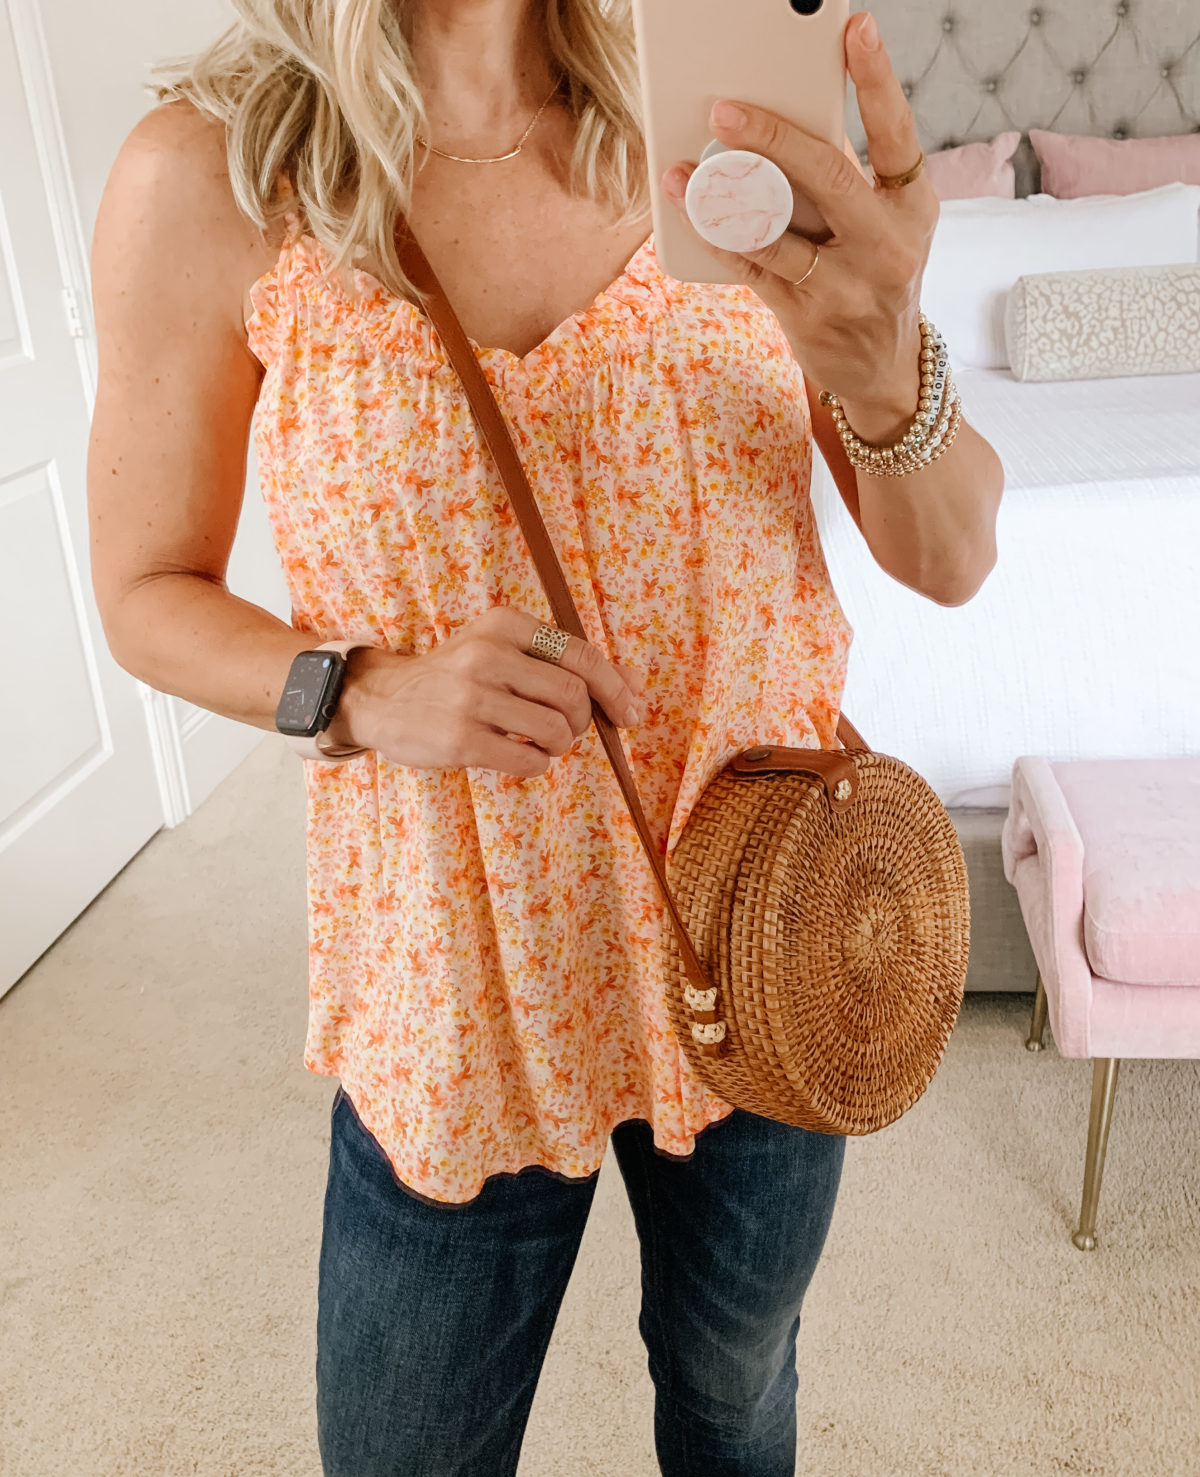 Old Navy Fashion, Floral Cami, Jeans, Wedges, Crossbody